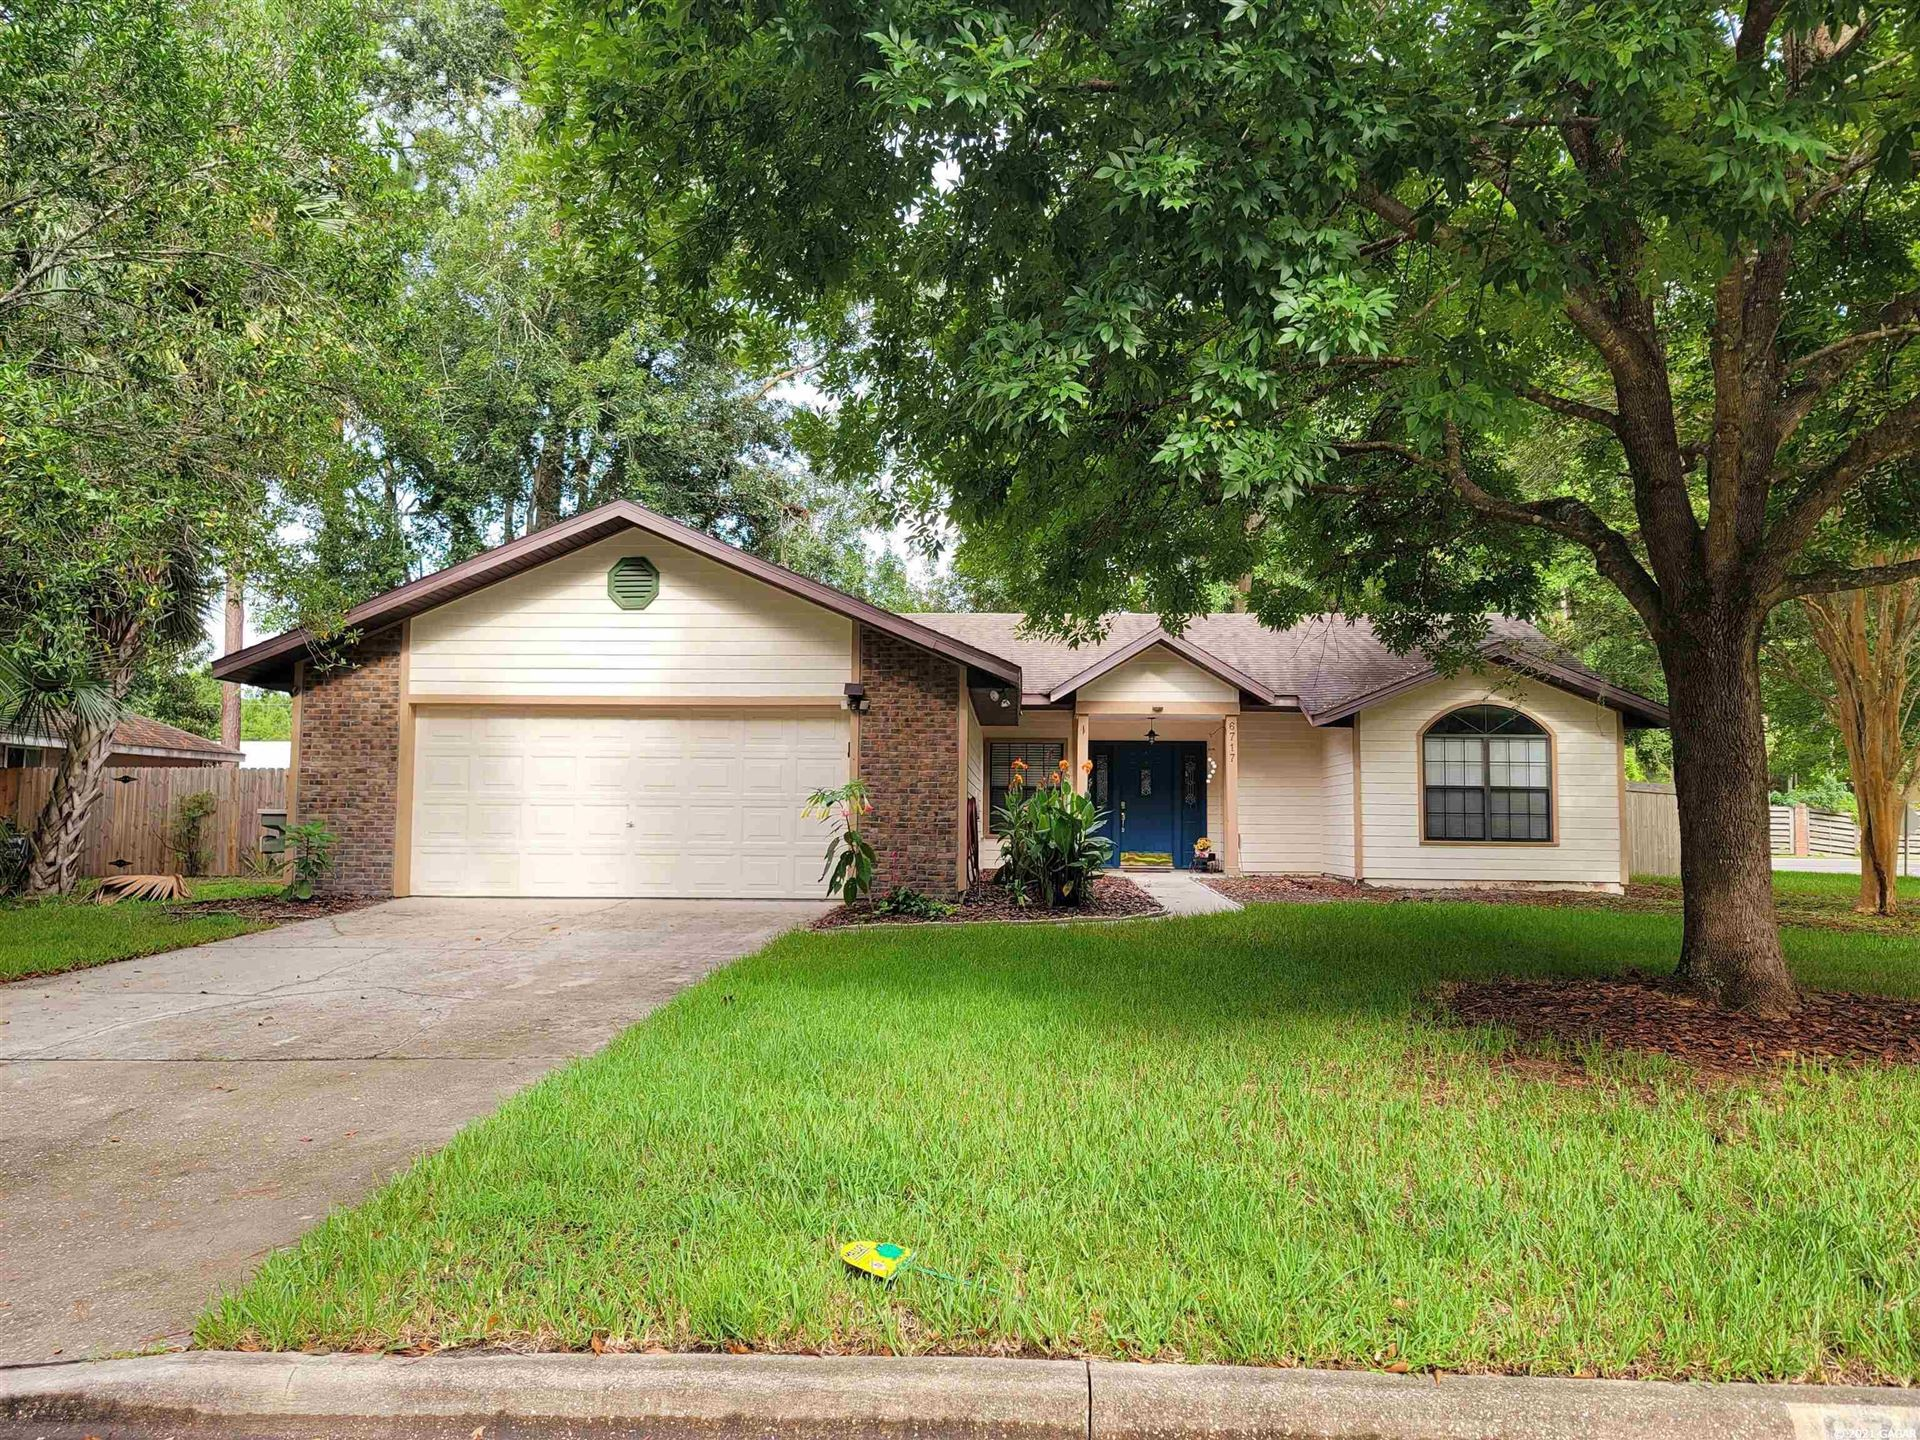 6717 NW 37th Terrace, Gainesville, FL 32653 - #: 447506